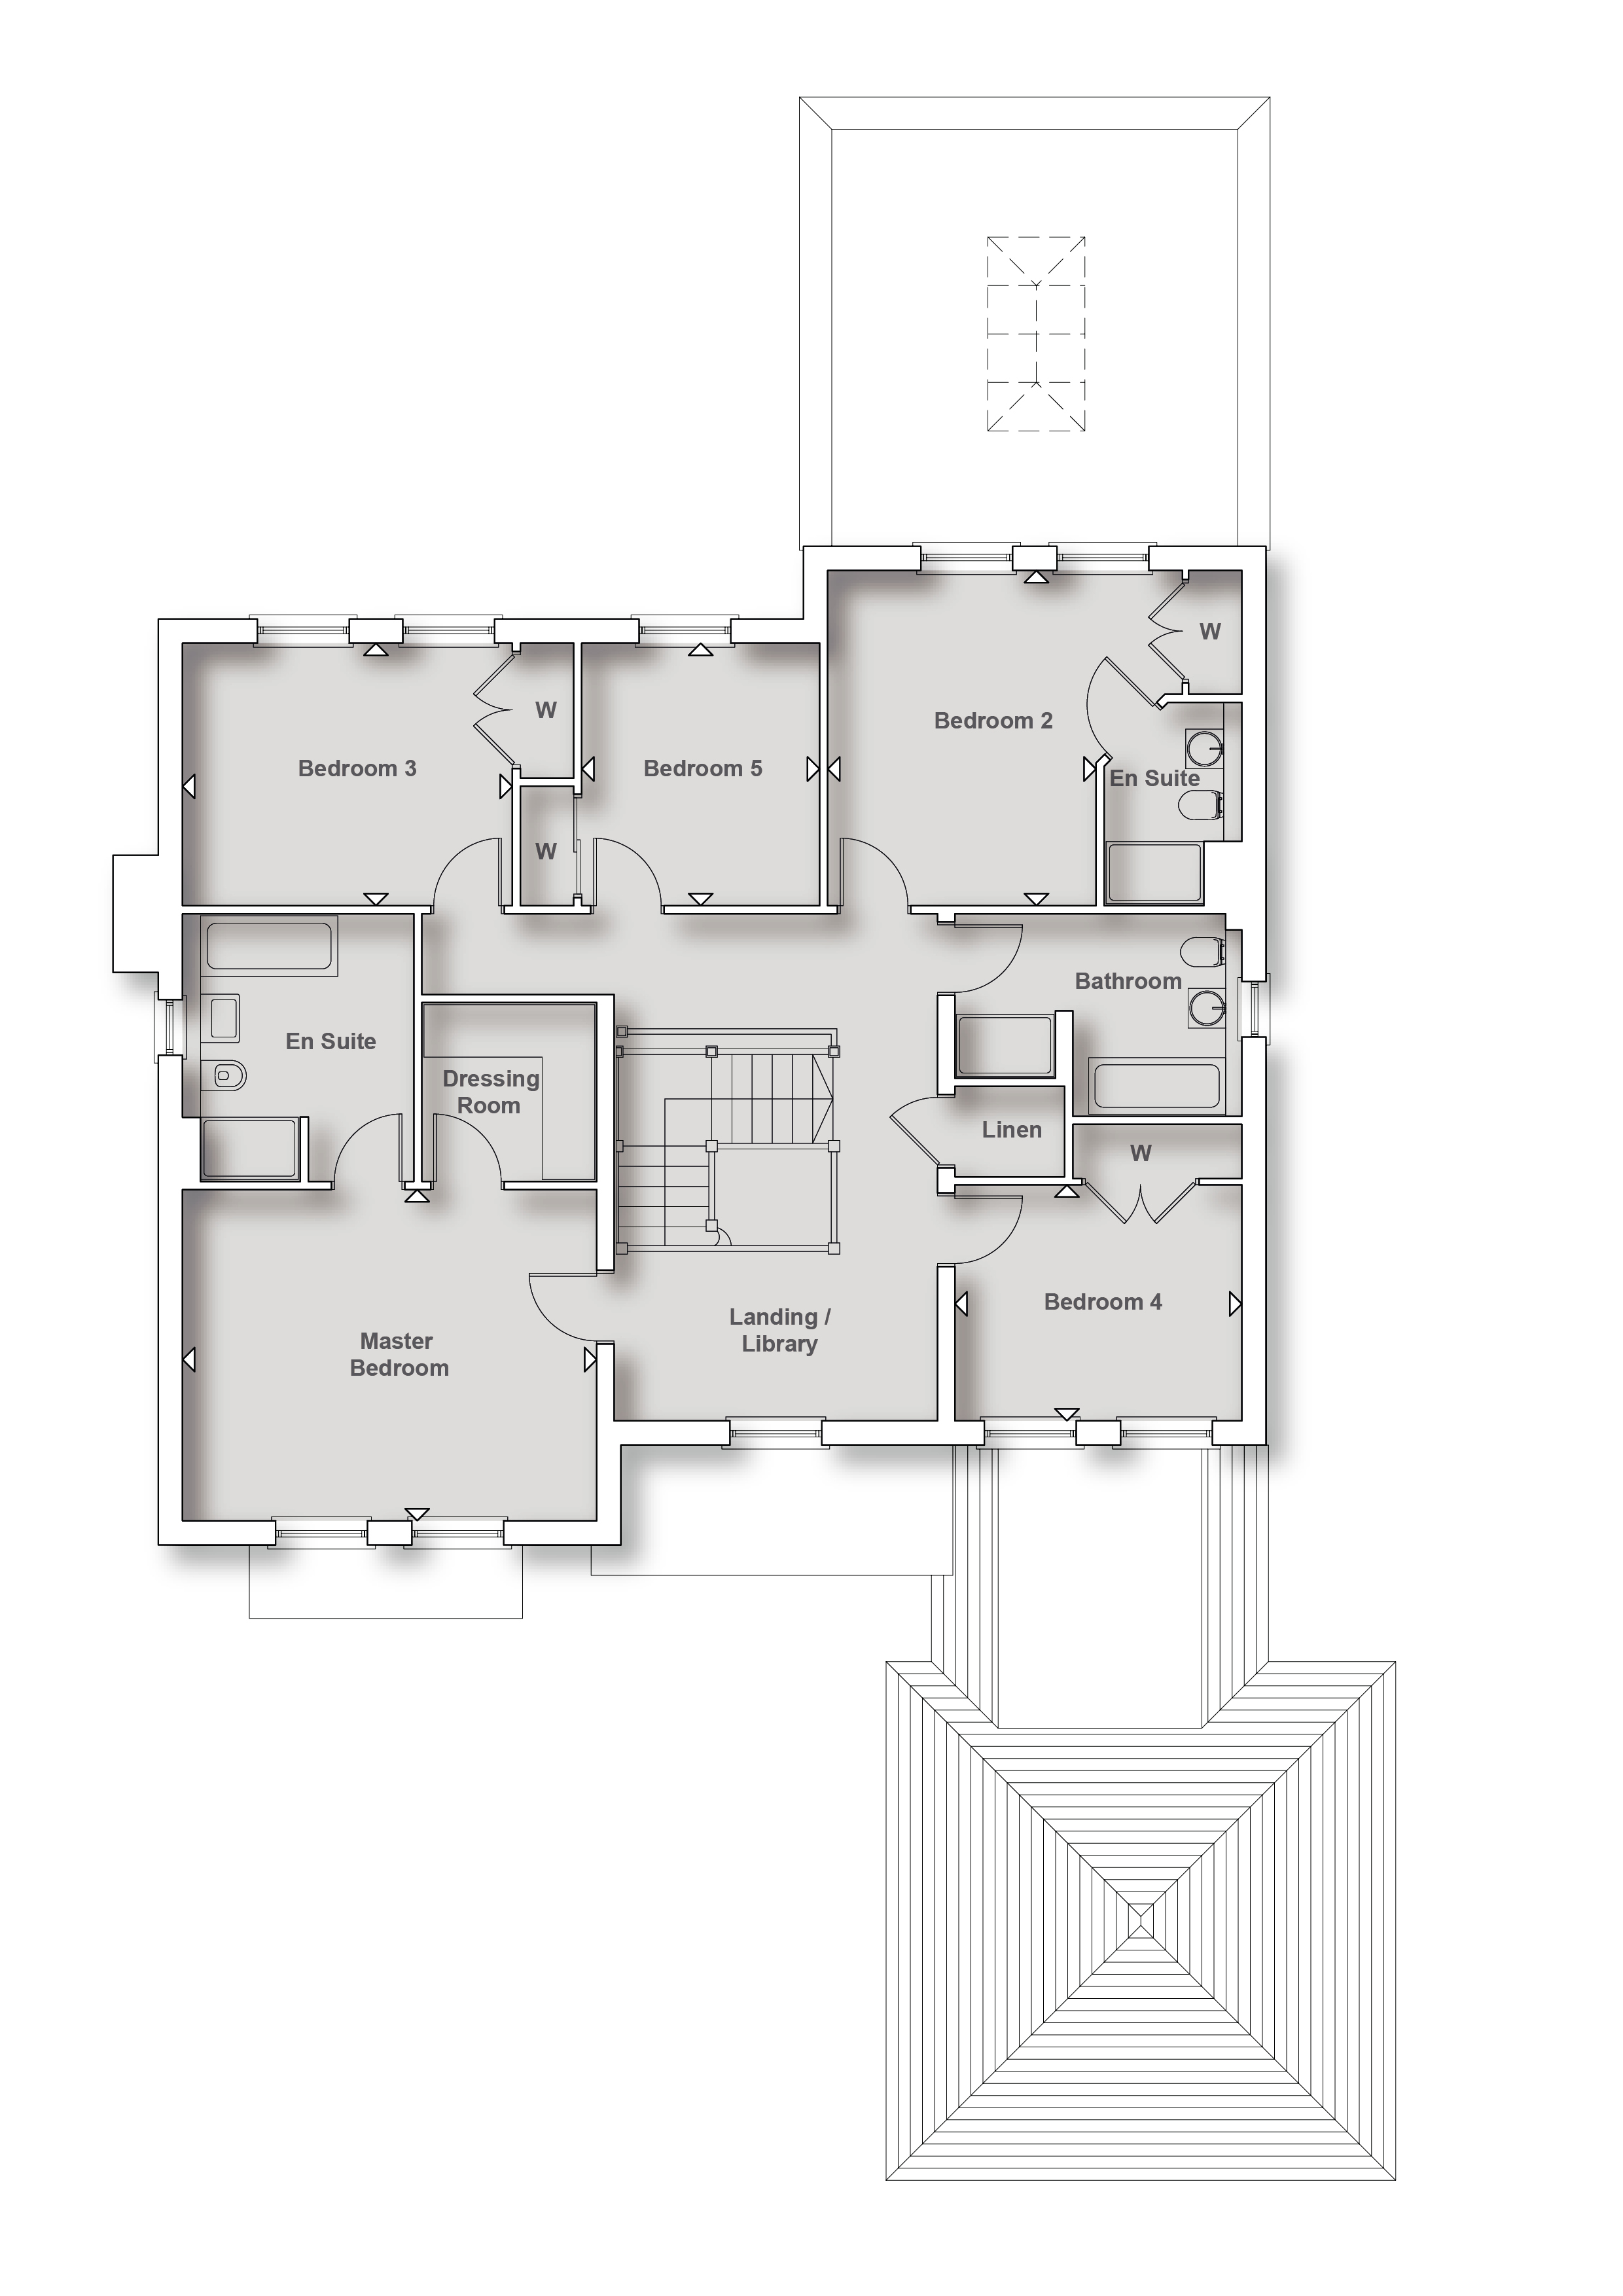 plot_2_first_floor_plan